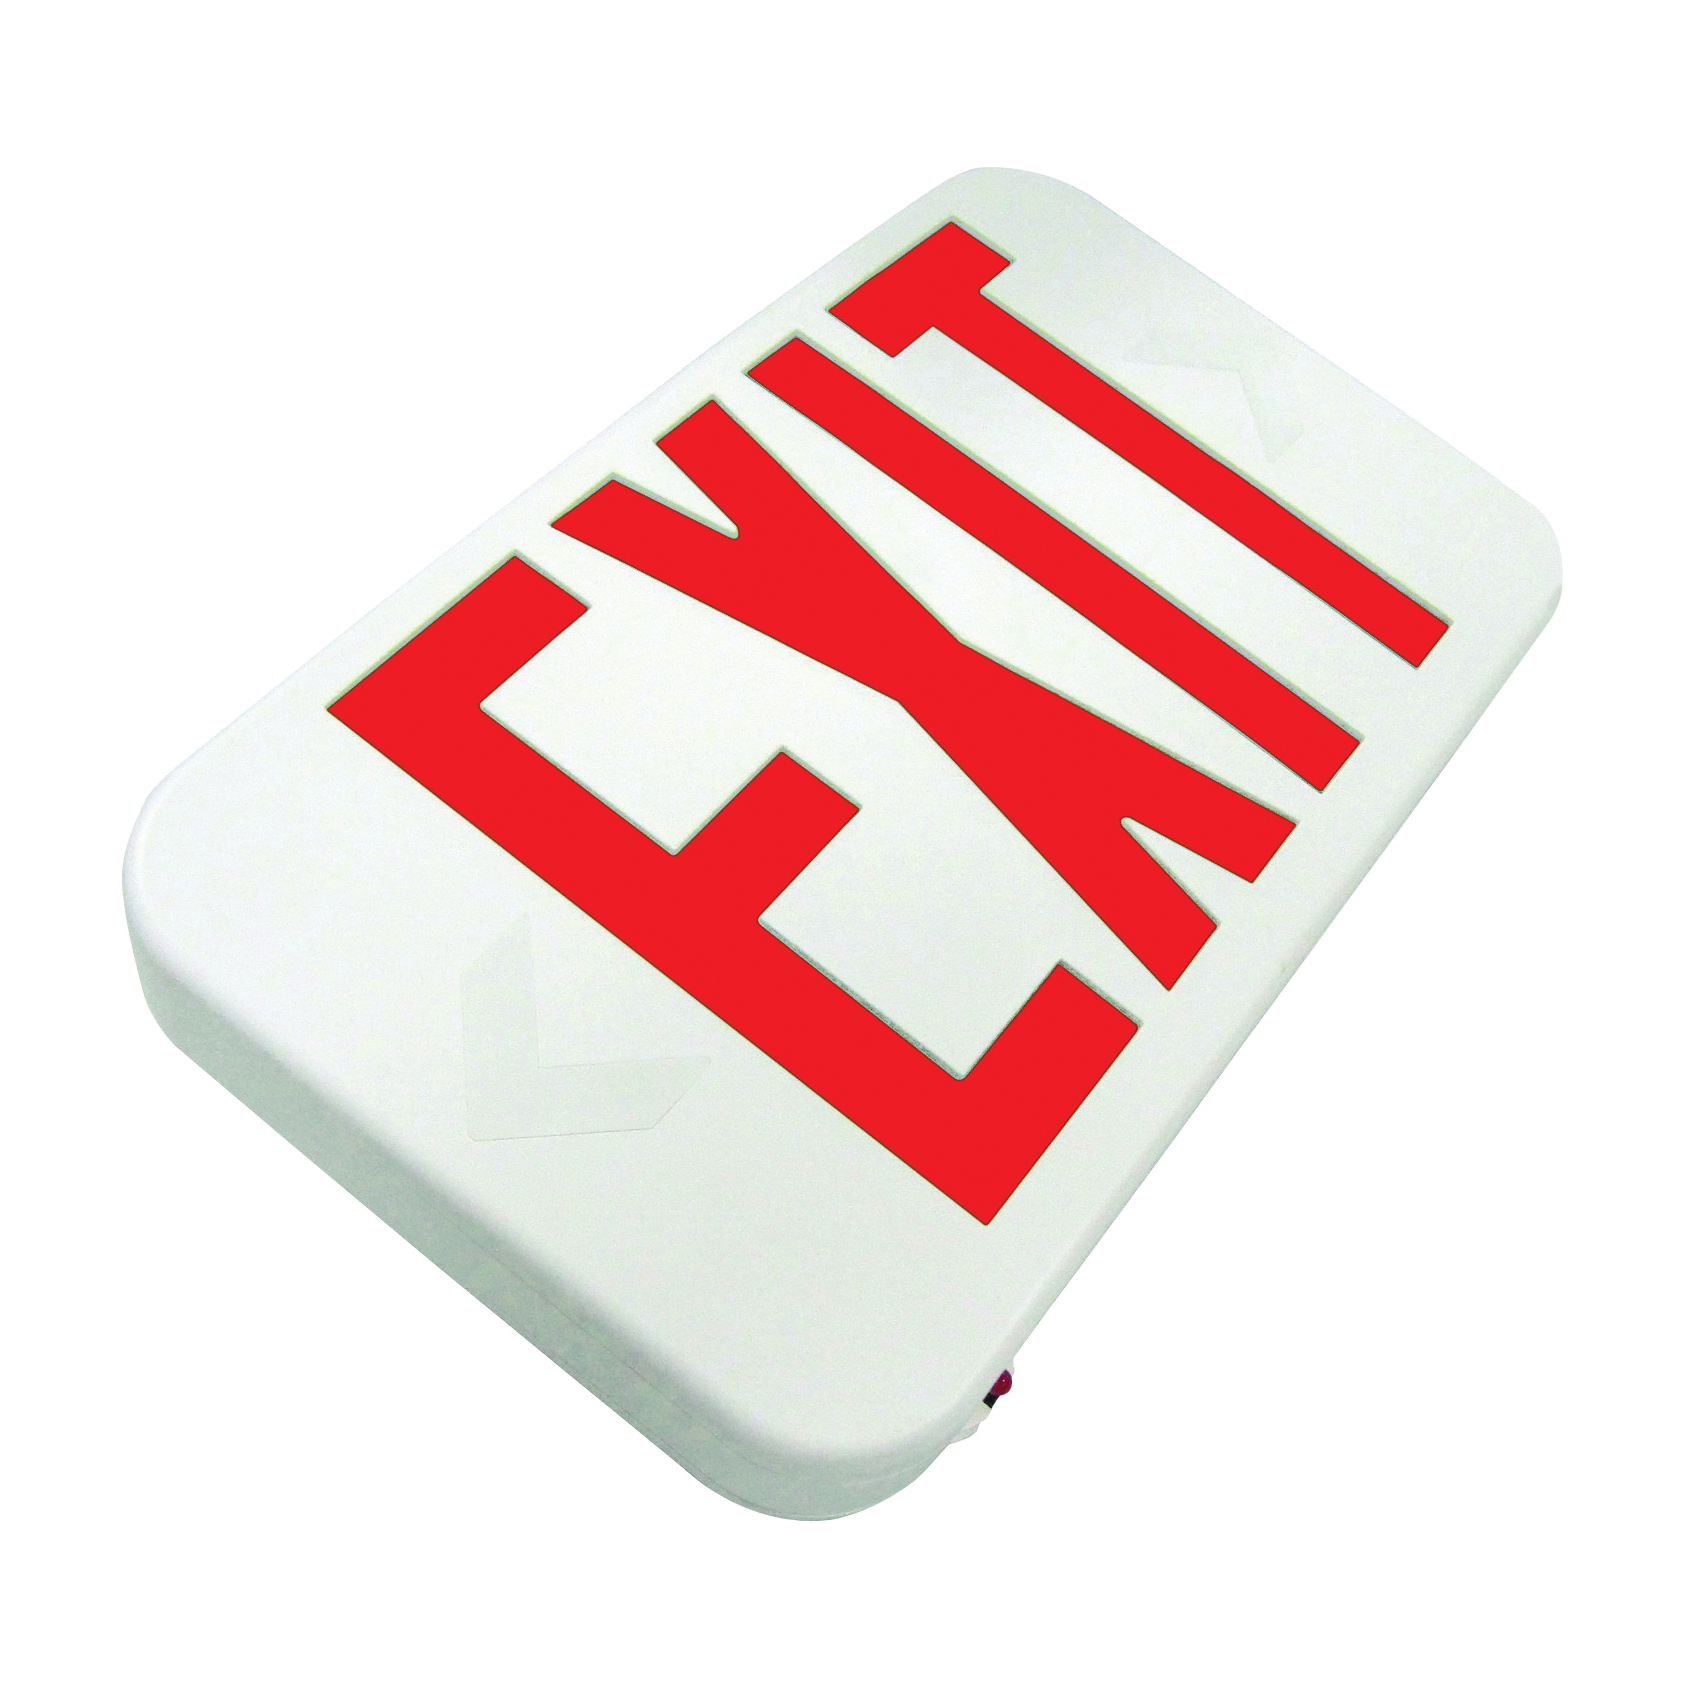 Picture of HOWARD LIGHTING HL0301B2RW Exit Sign, 7-3/16 in OAW, 11-5/8 in OAH, 120/277 VAC, Thermoplastic Fixture, White